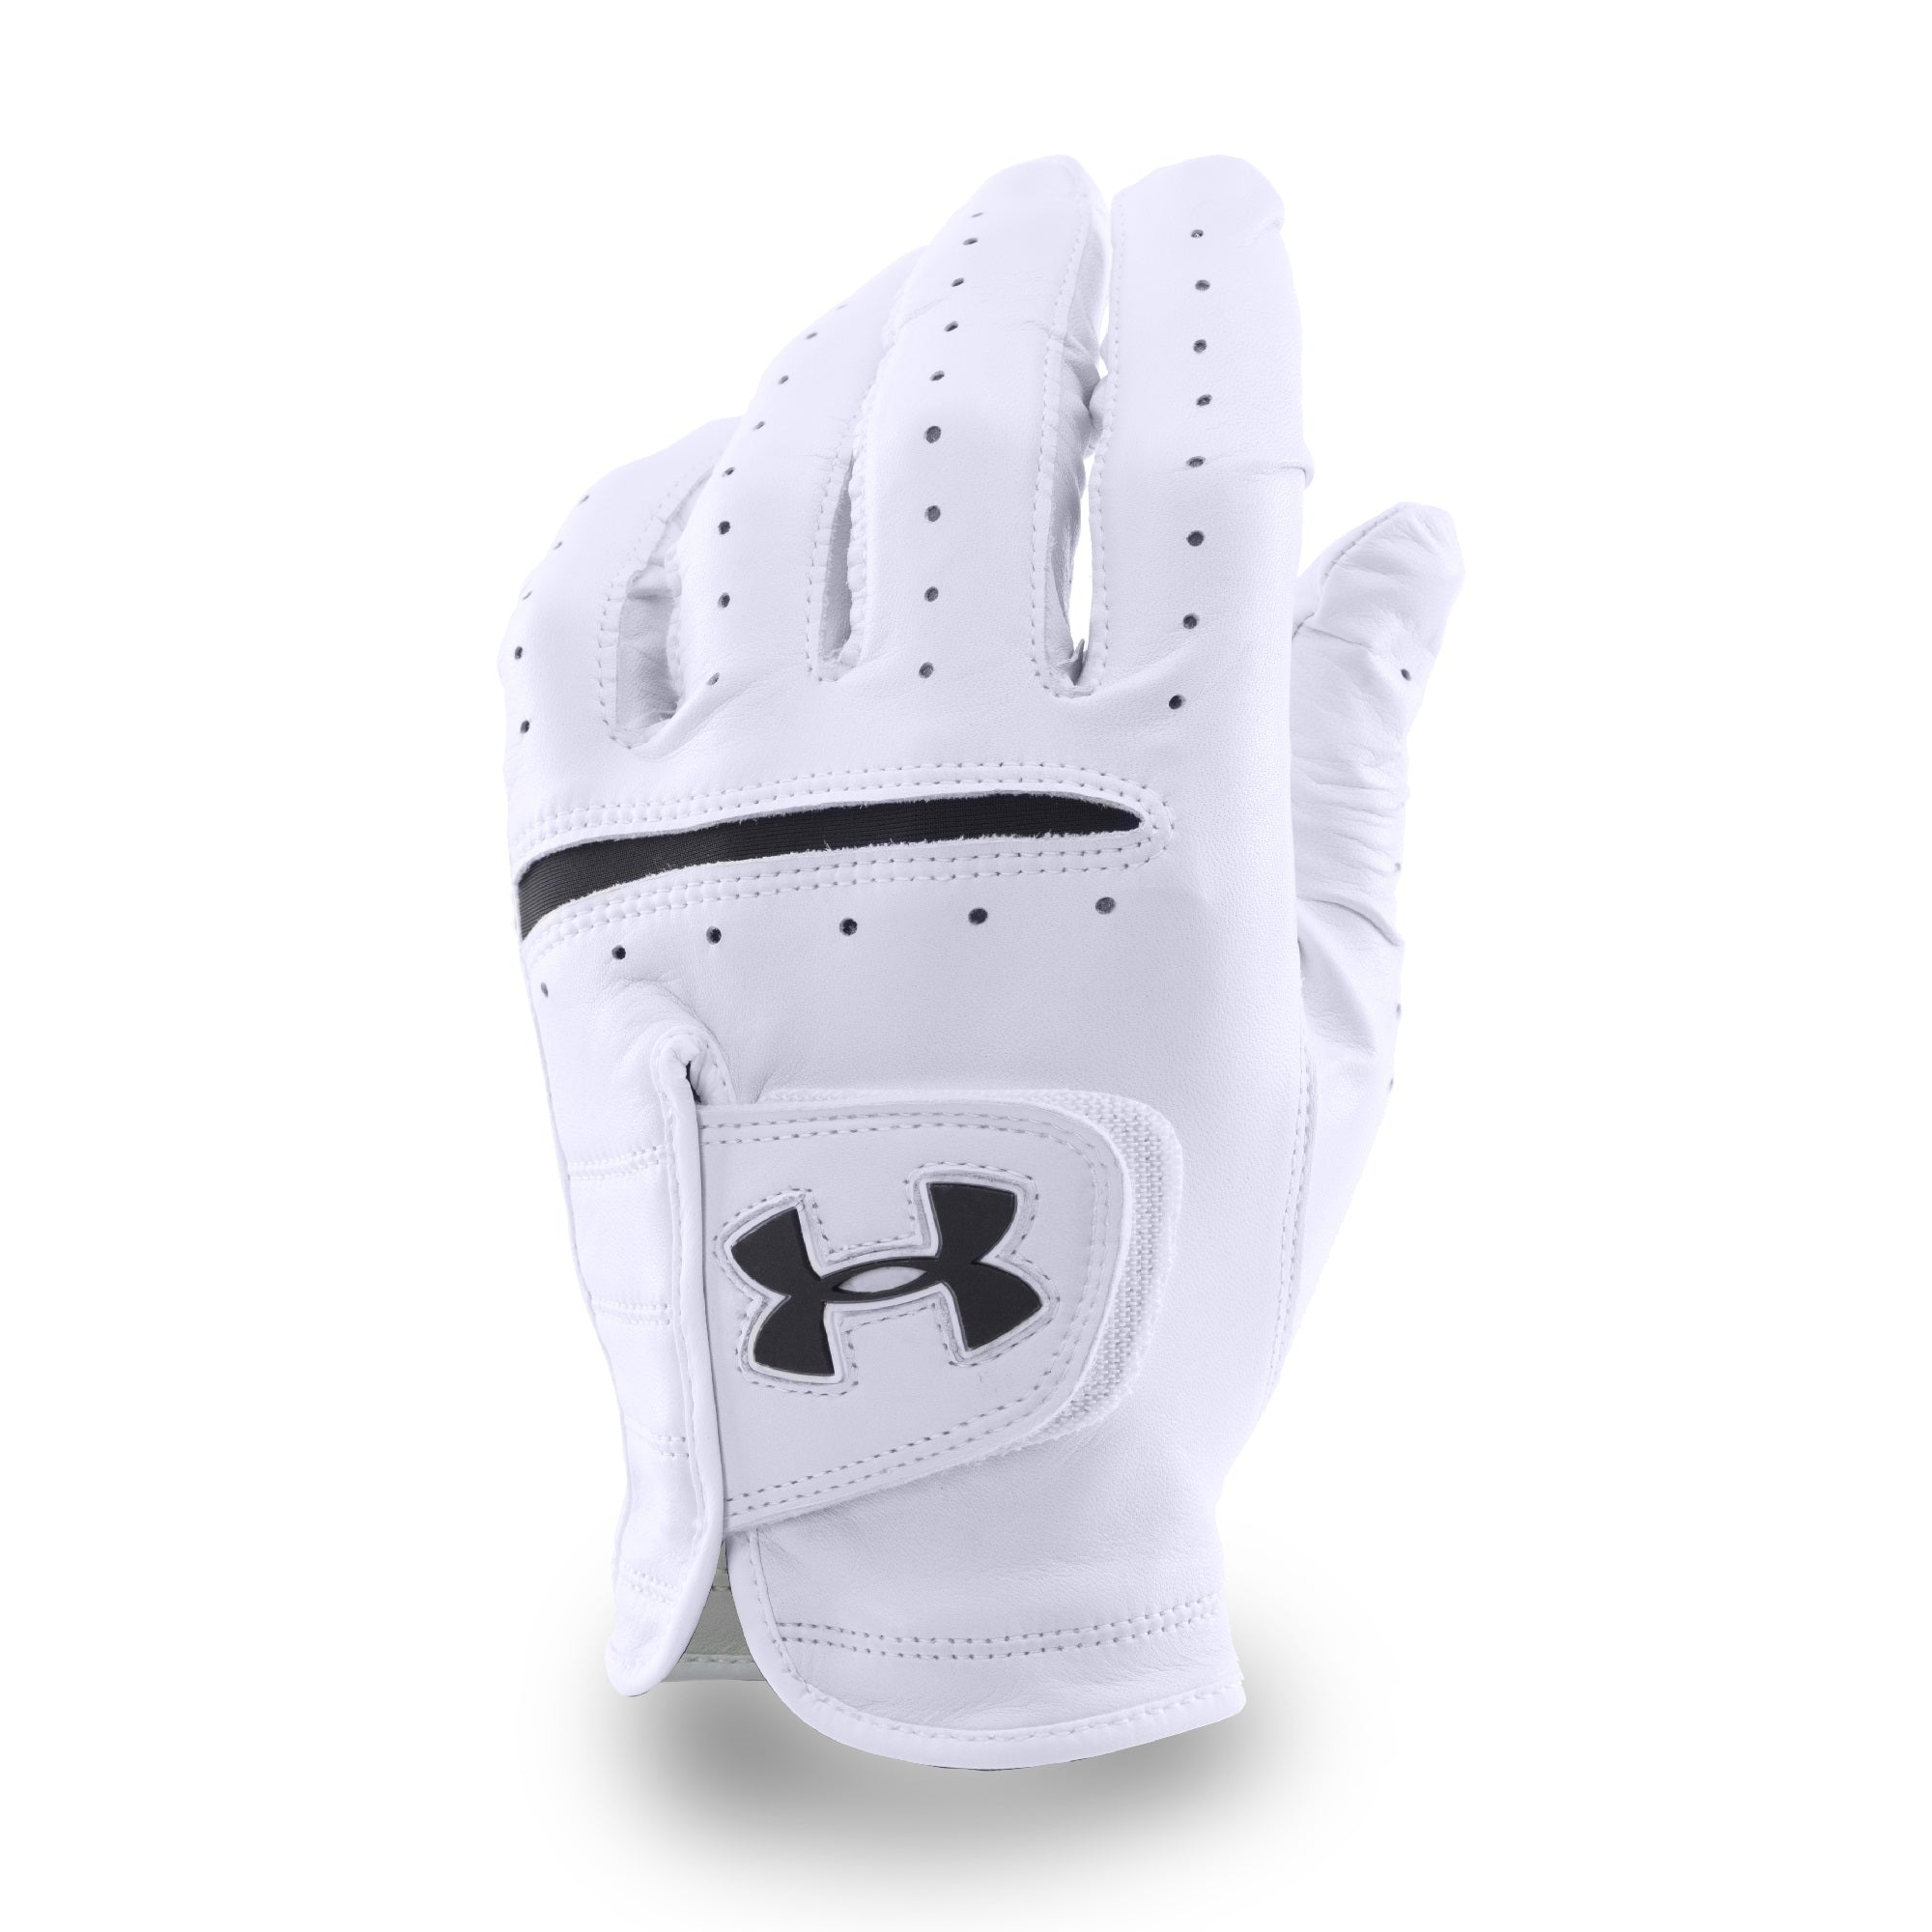 Under Armour Golf Strikeskin Tour Leather Glove 1275442 MLH